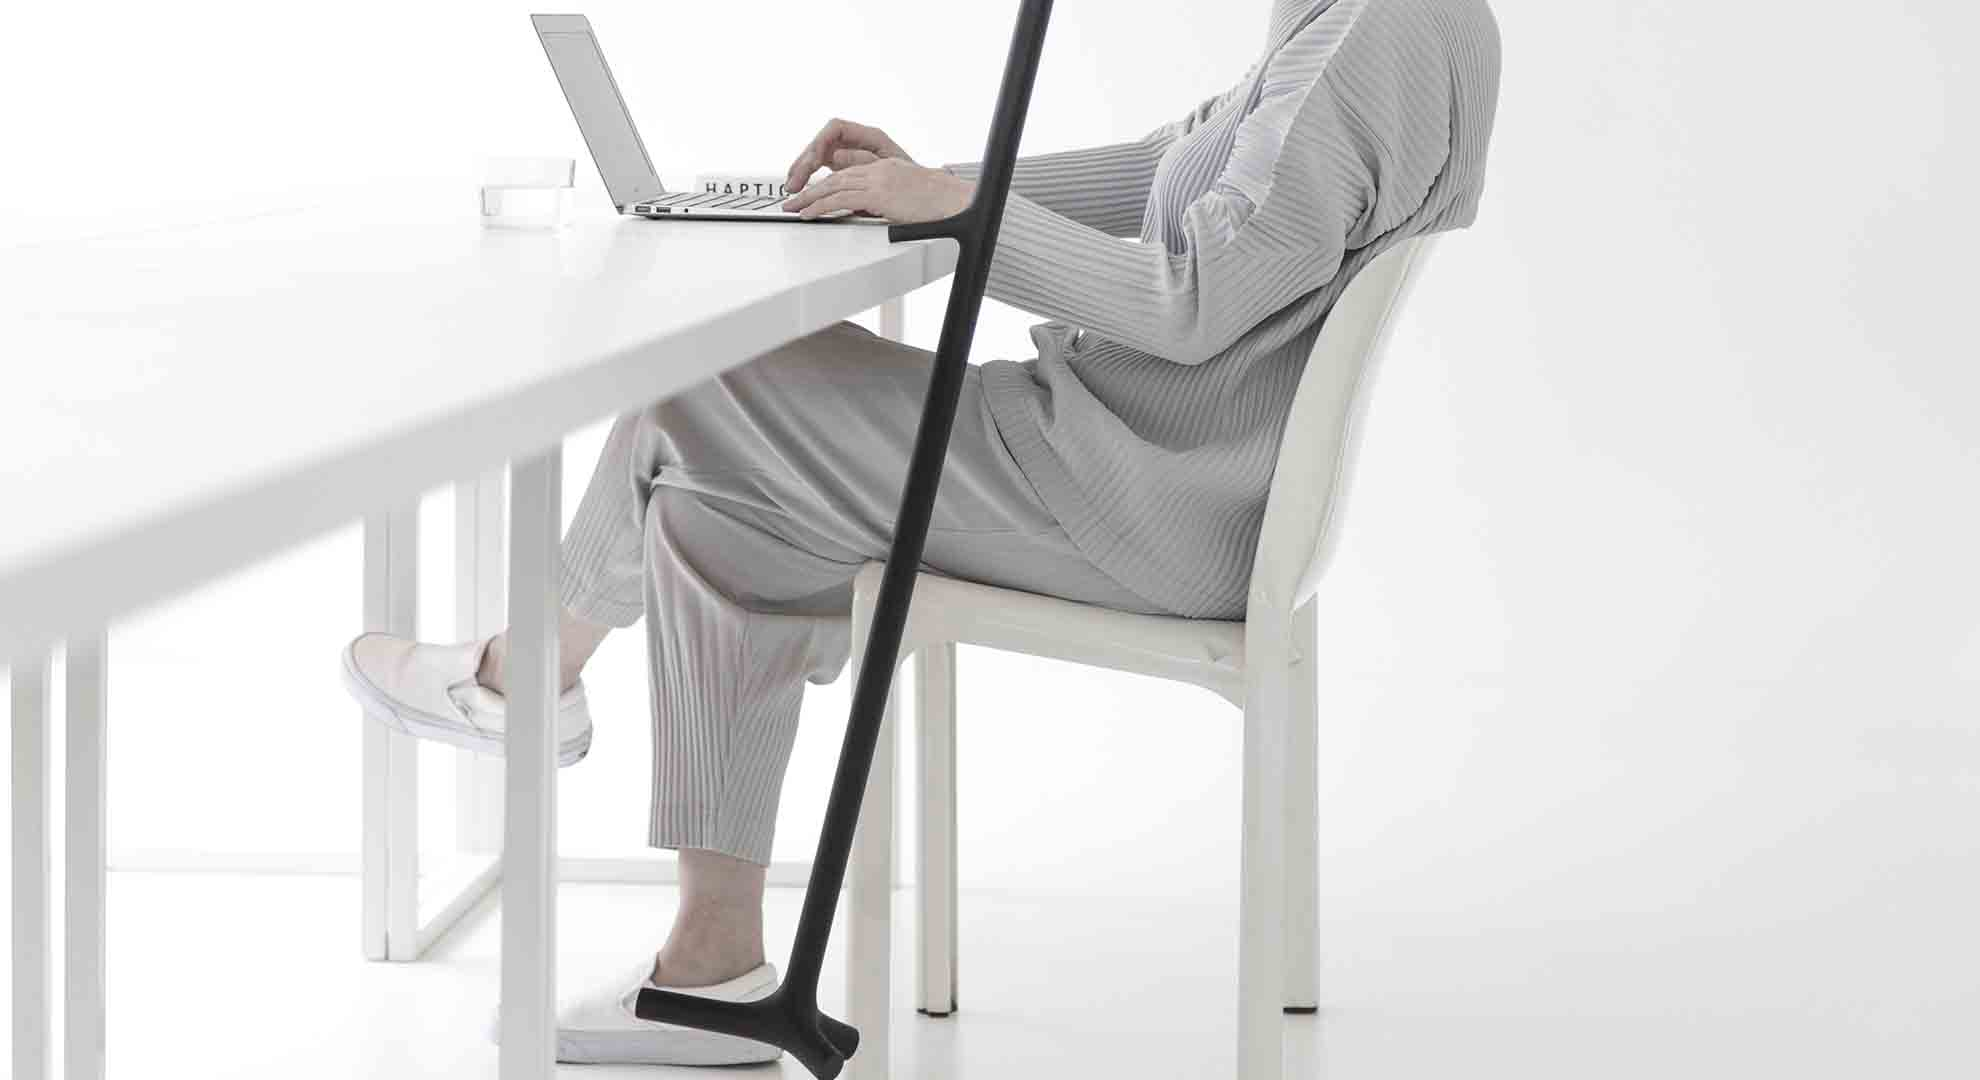 The 3D-Printed walking stick is a new and elegant solution for physically challenged people